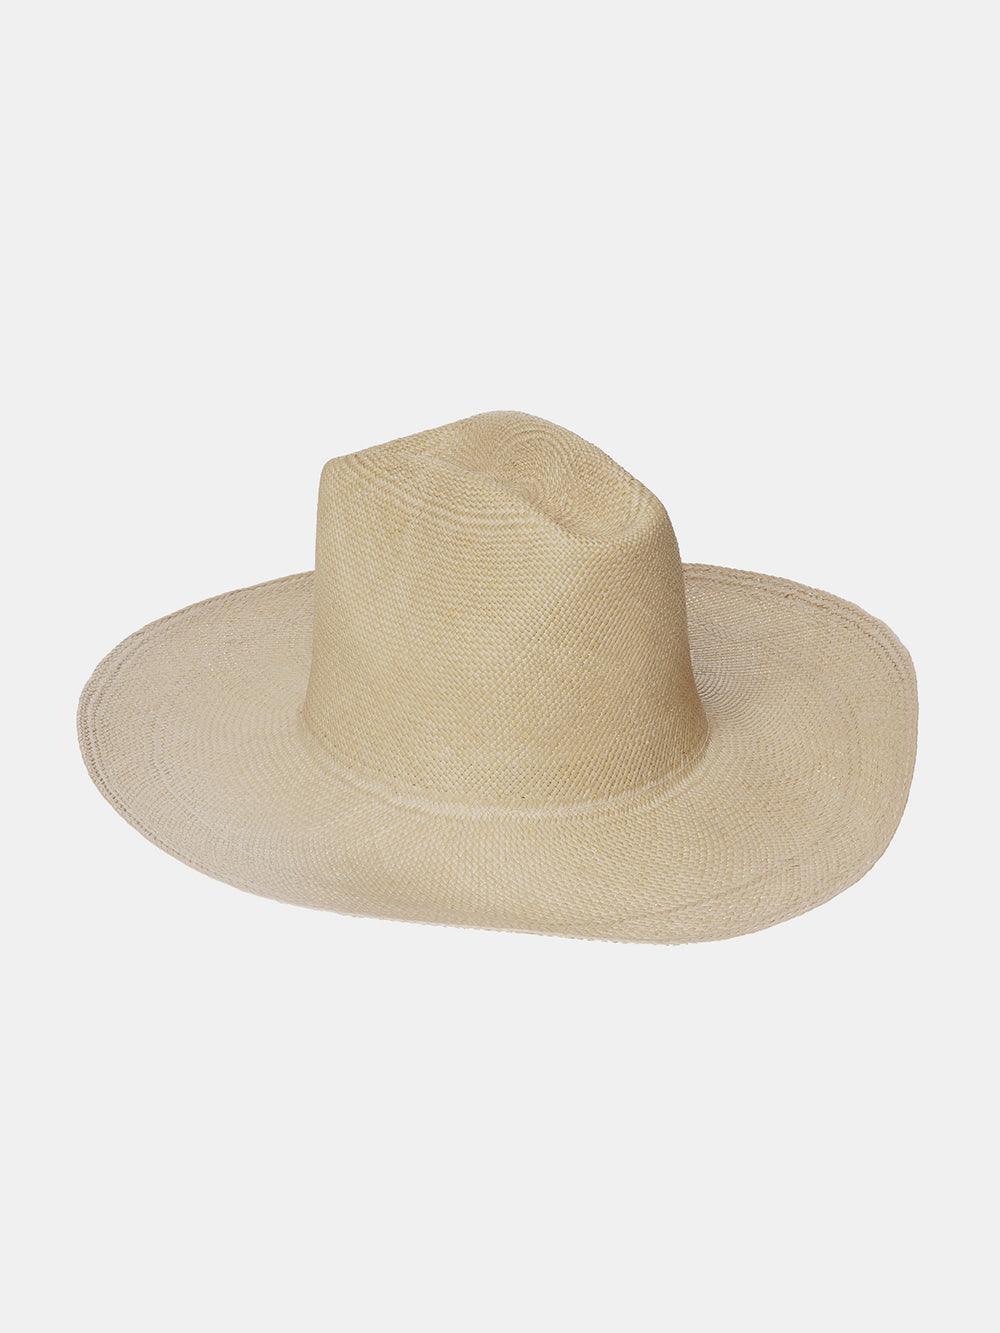 clyde cowboy hat in putty